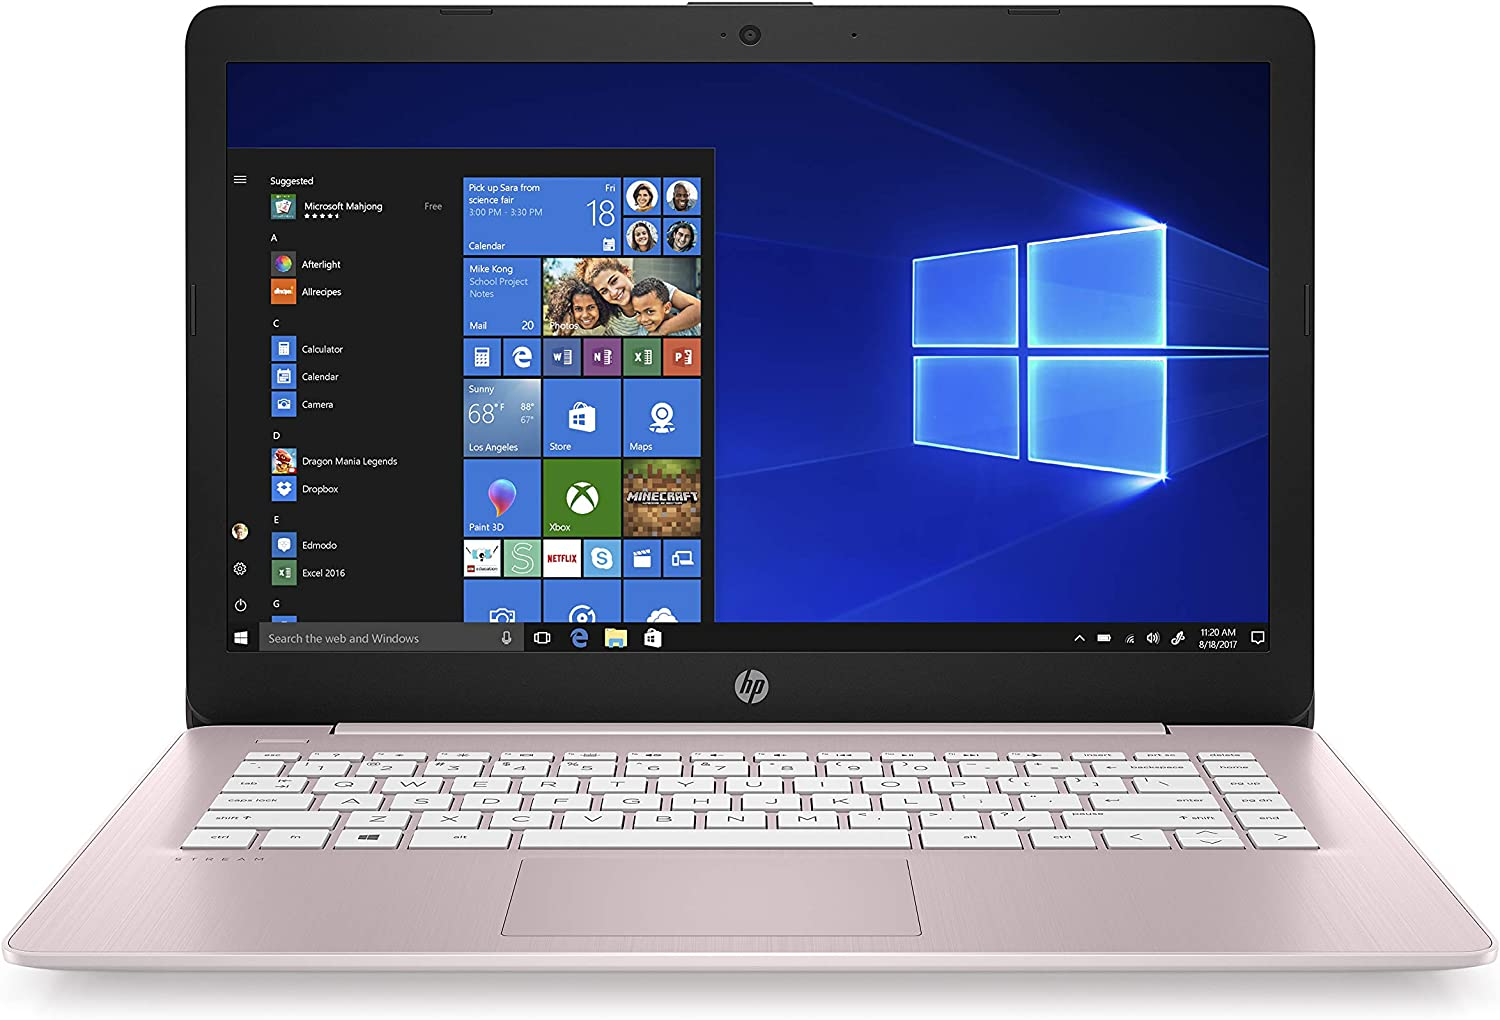 HP Stream 14-inch Laptop, AMD Dual-Core A4-9120E Processor, 4 GB SDRAM, 32 GB eMMC, Windows 10 Home in S Mode with Office 365 Personal for One Year (14-ds0040nr, Rose Pink)